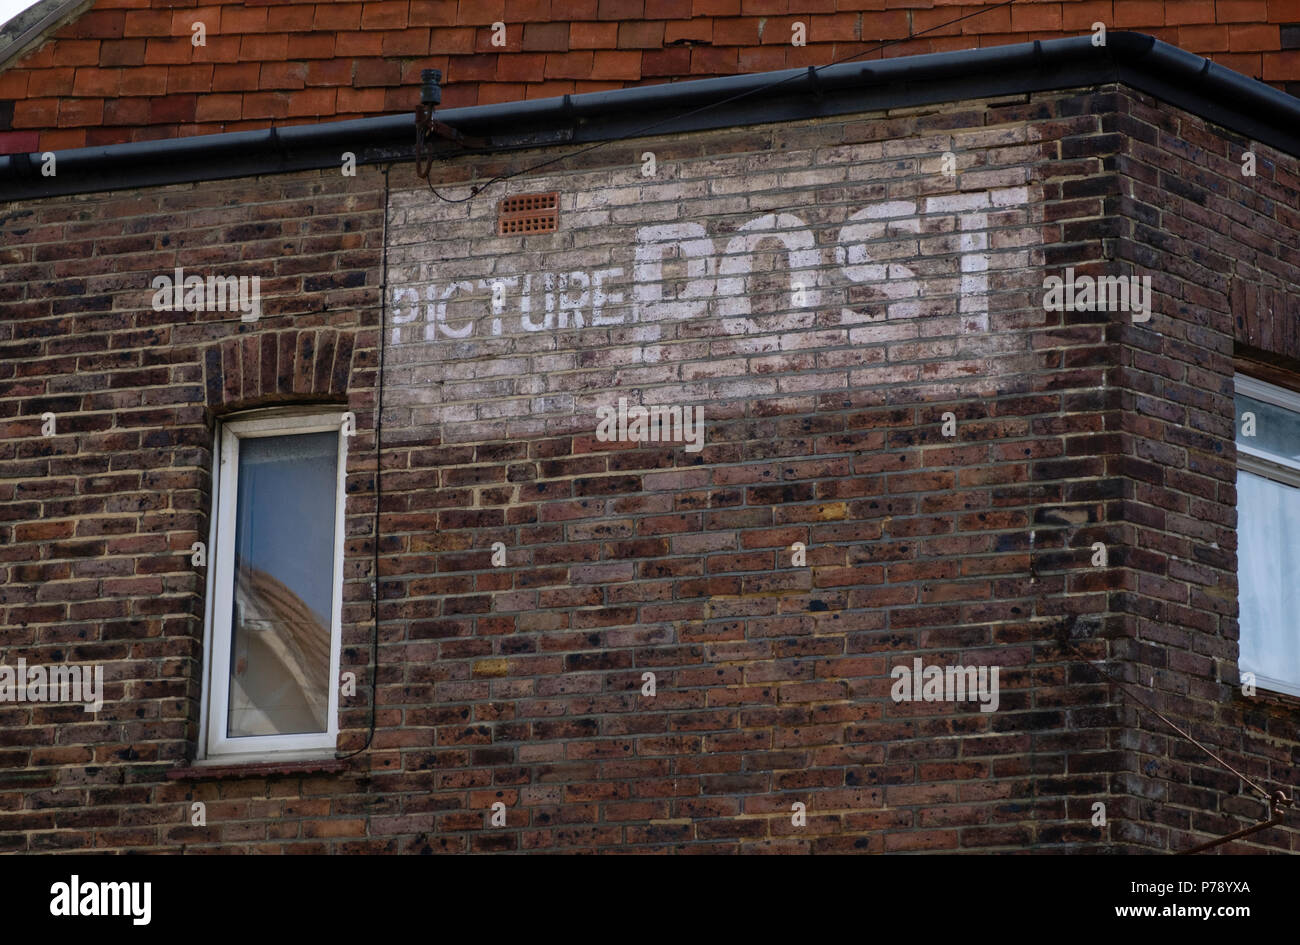 Picture Post advert on the side of a house in Bexhill on Sea - Stock Image